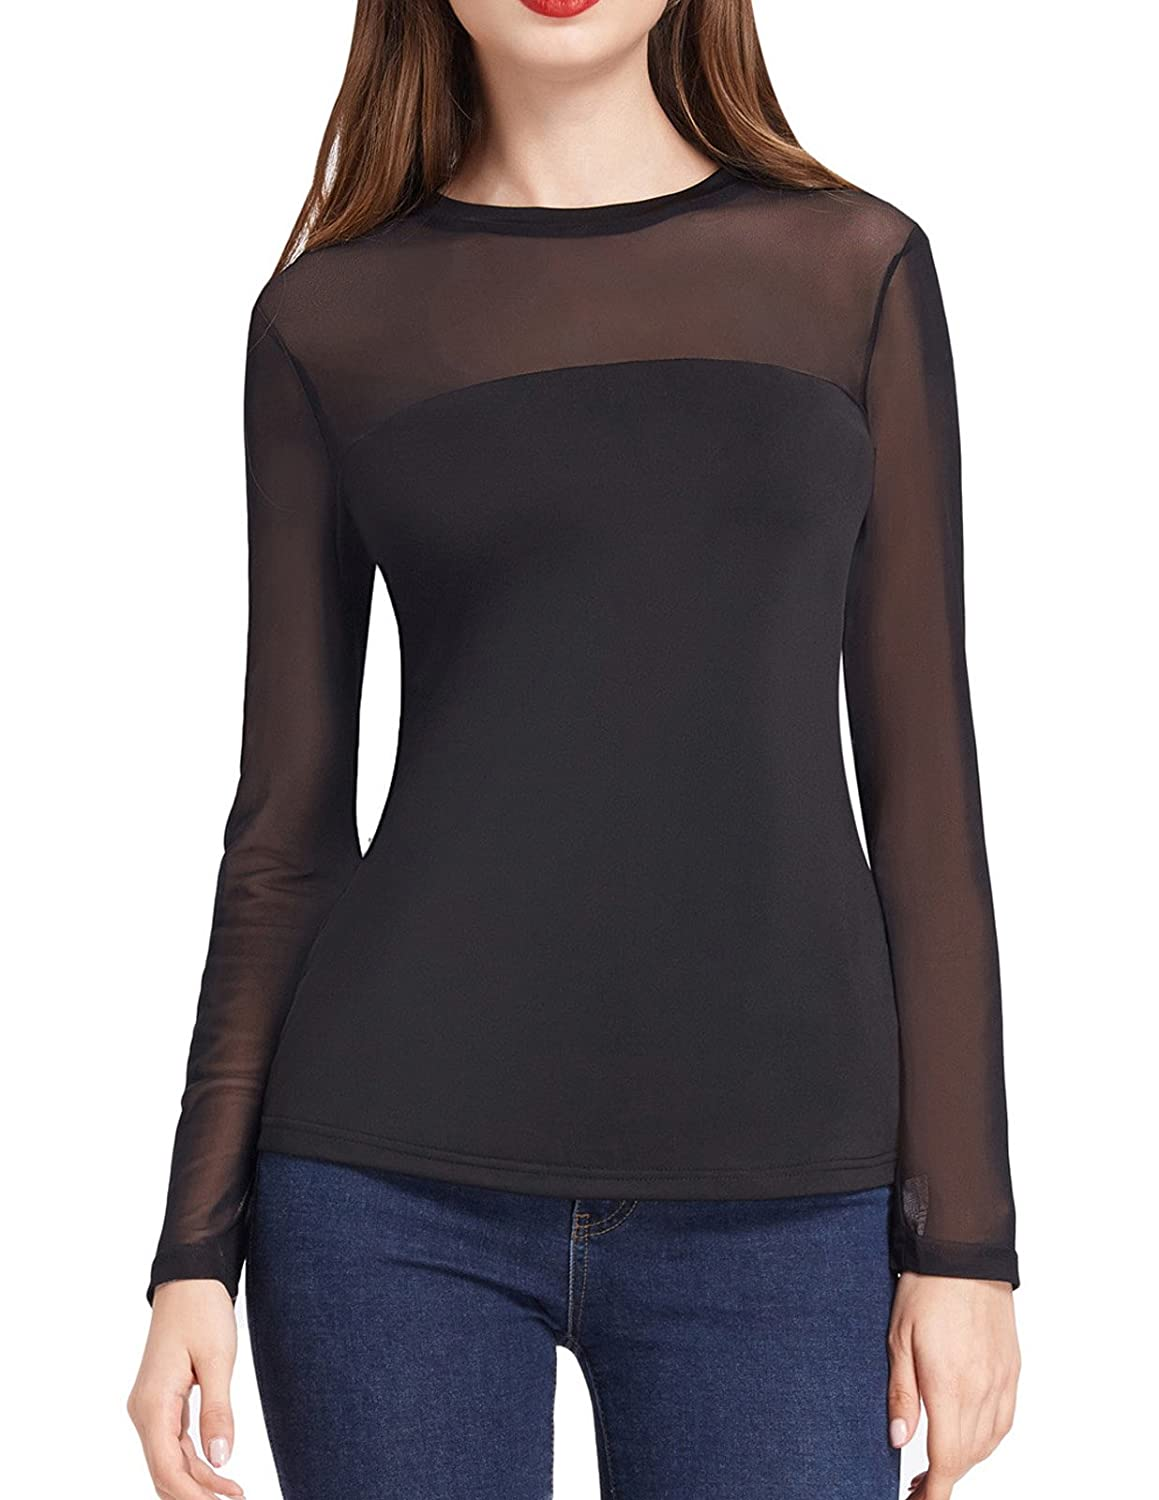 34f8e5c3 Pure mesh overlay has a subtle shimmer to elevate your look. This classic  black/white sheer T-shirt is easy to pair with the shoes and pants, ...